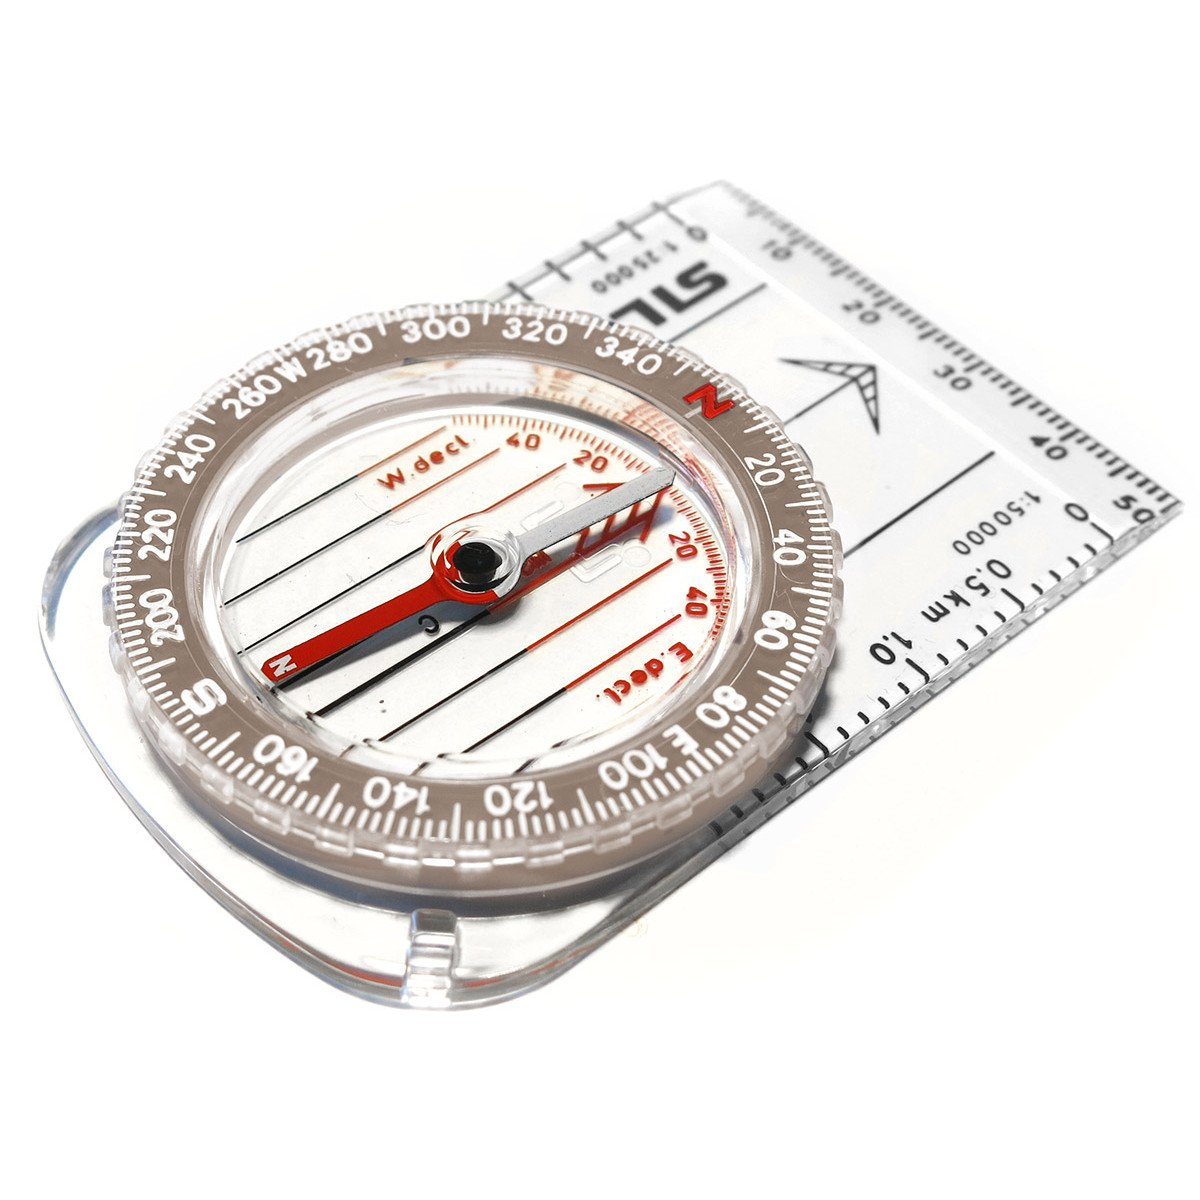 Silva Classic Compass, shown laid flat made from clear plastic material